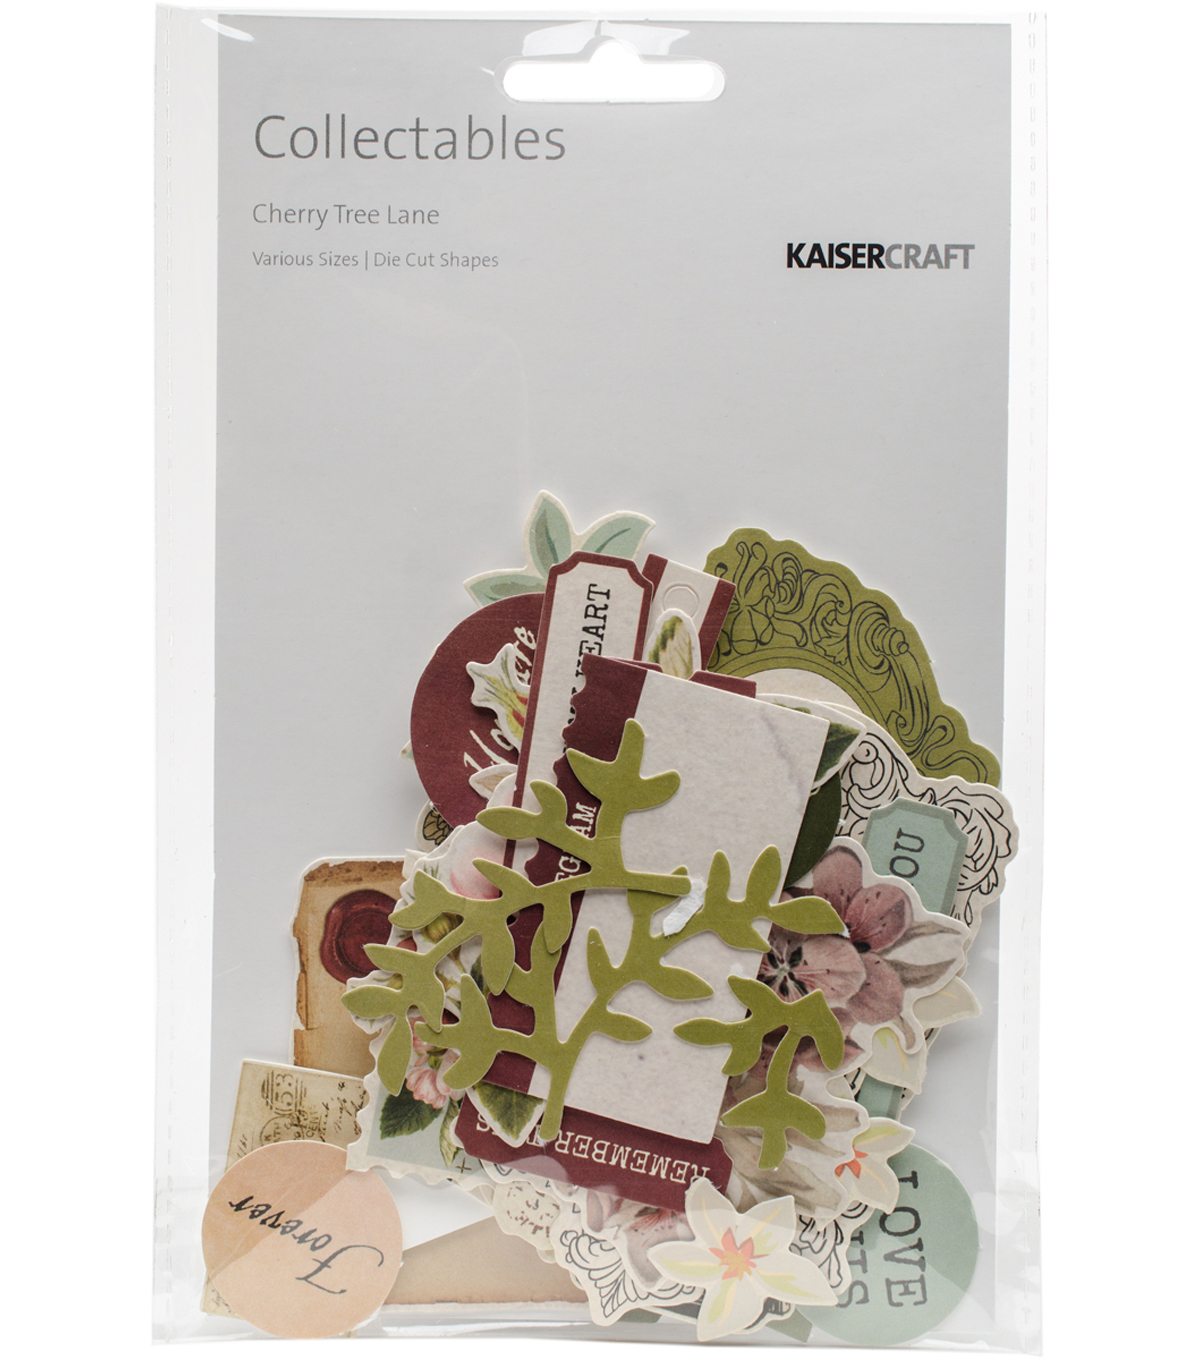 Kaisercraft Collectables Cardstock Die-Cuts-Cherry Tree Lane